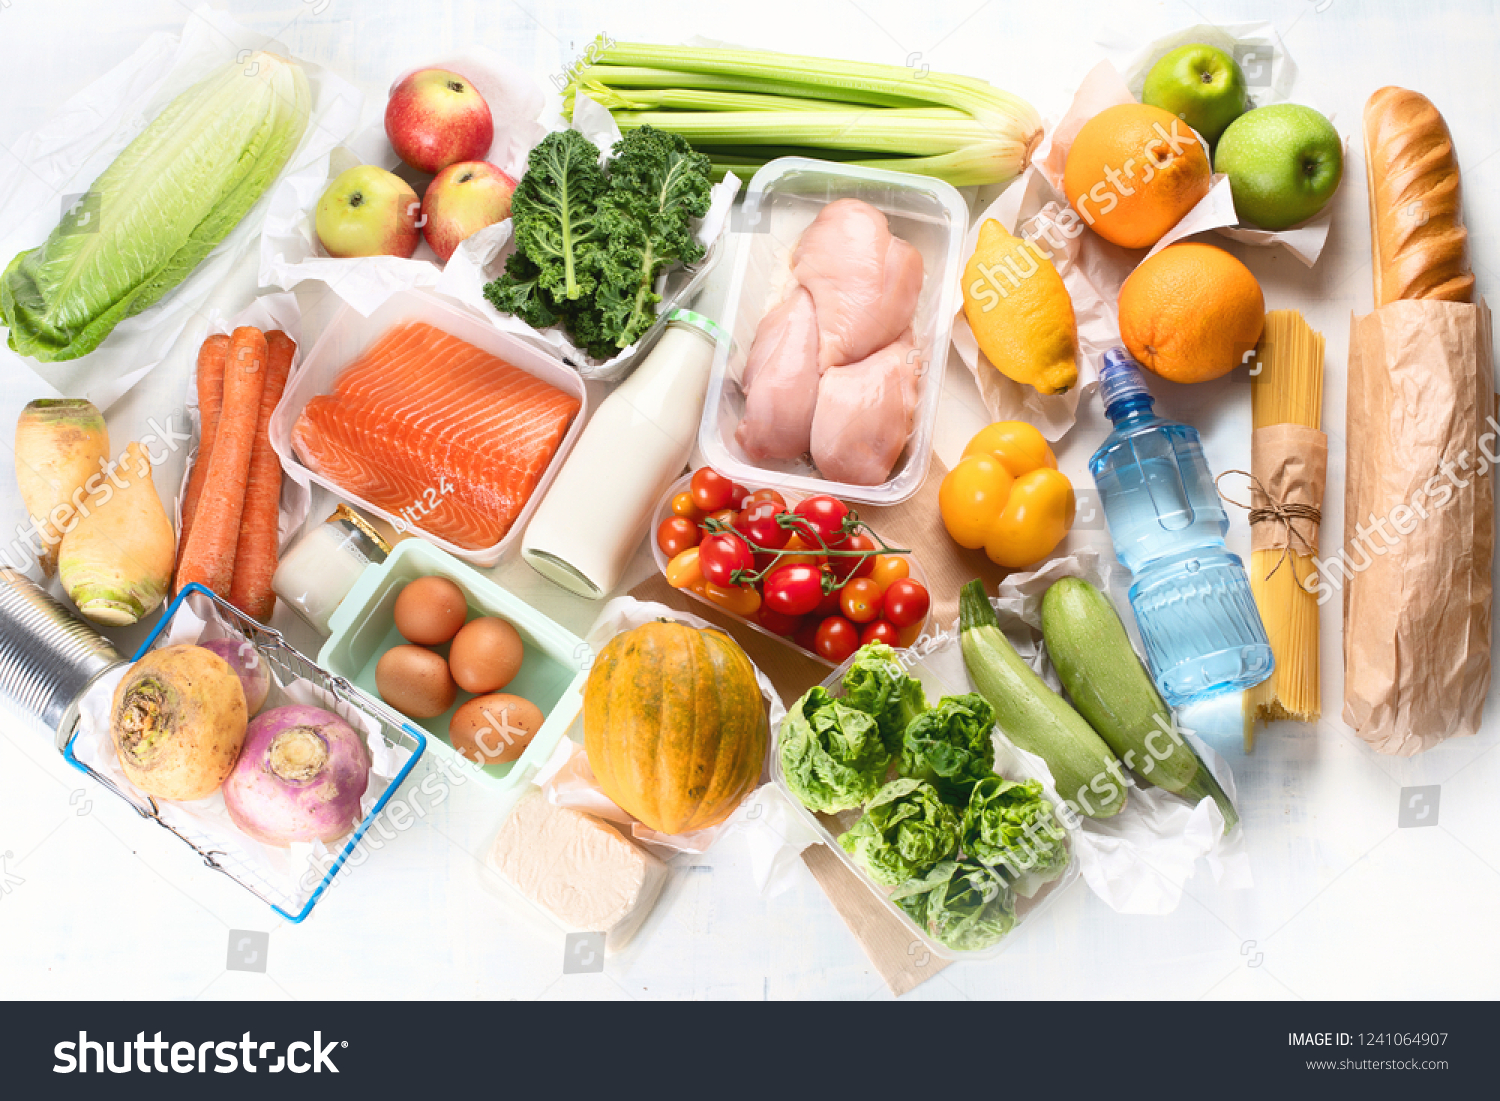 Grocery. Different health food. Grocery shopping concept. Balanced diet. Top view  #1241064907